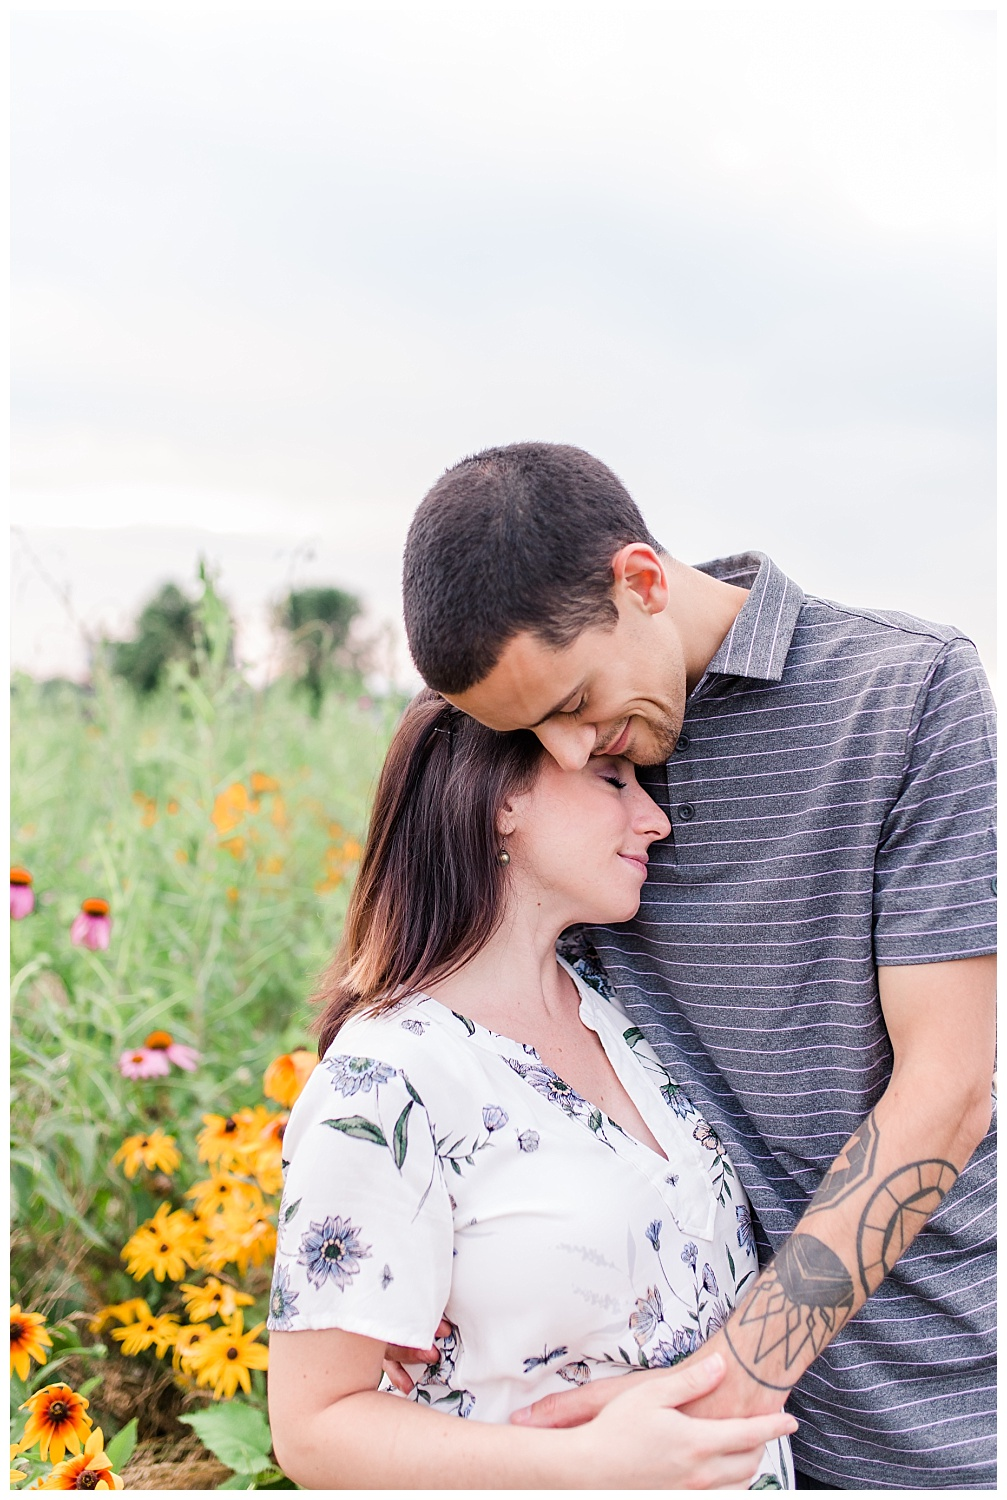 Lititz Wildflower Maternity Session_0006.jpg